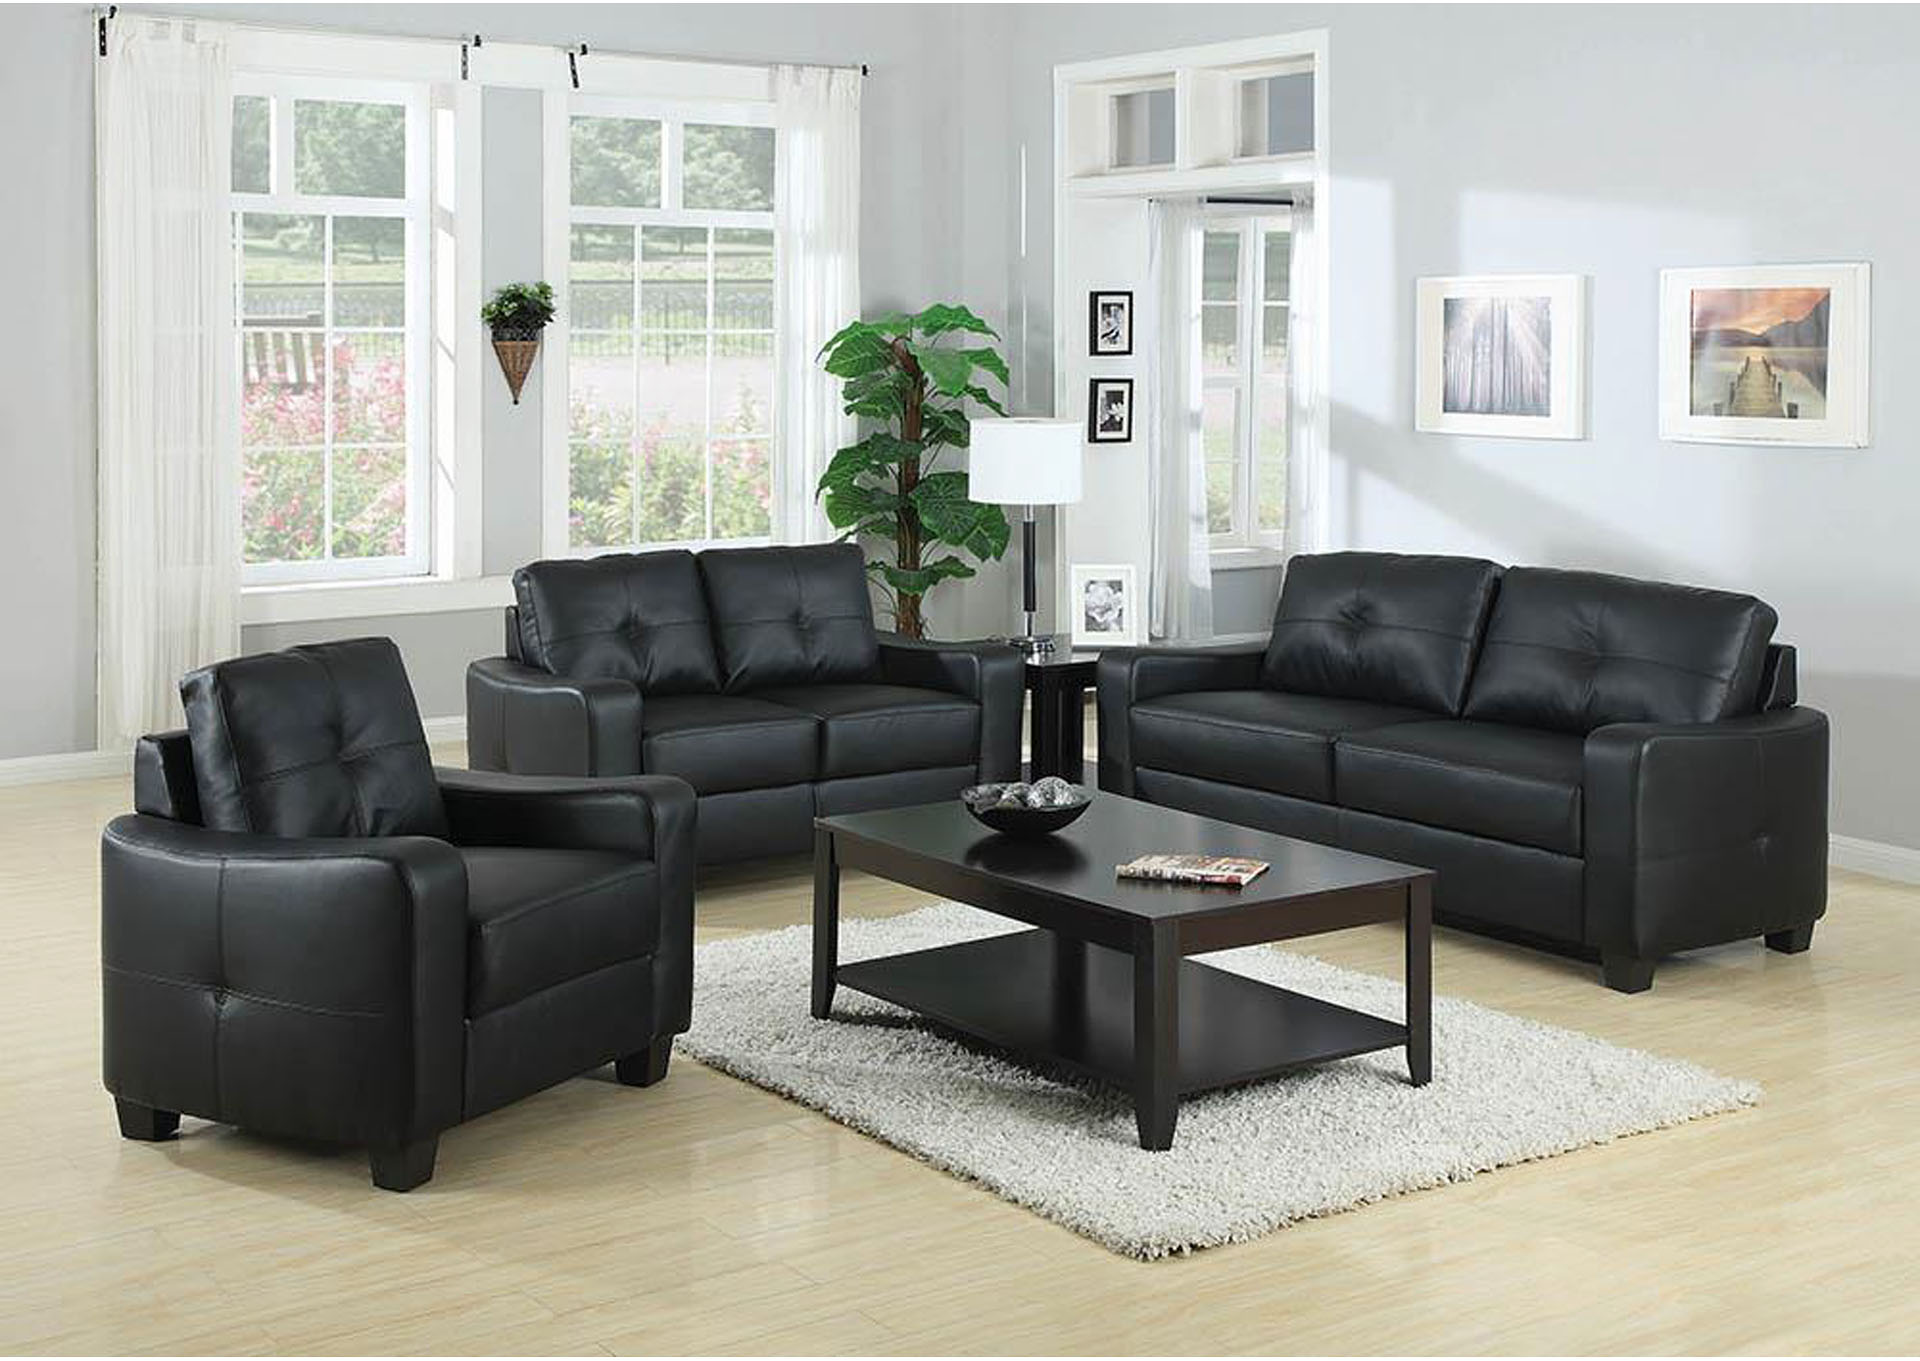 Big Box Furniture Discount Furniture Stores In Miami Florida Black Chair